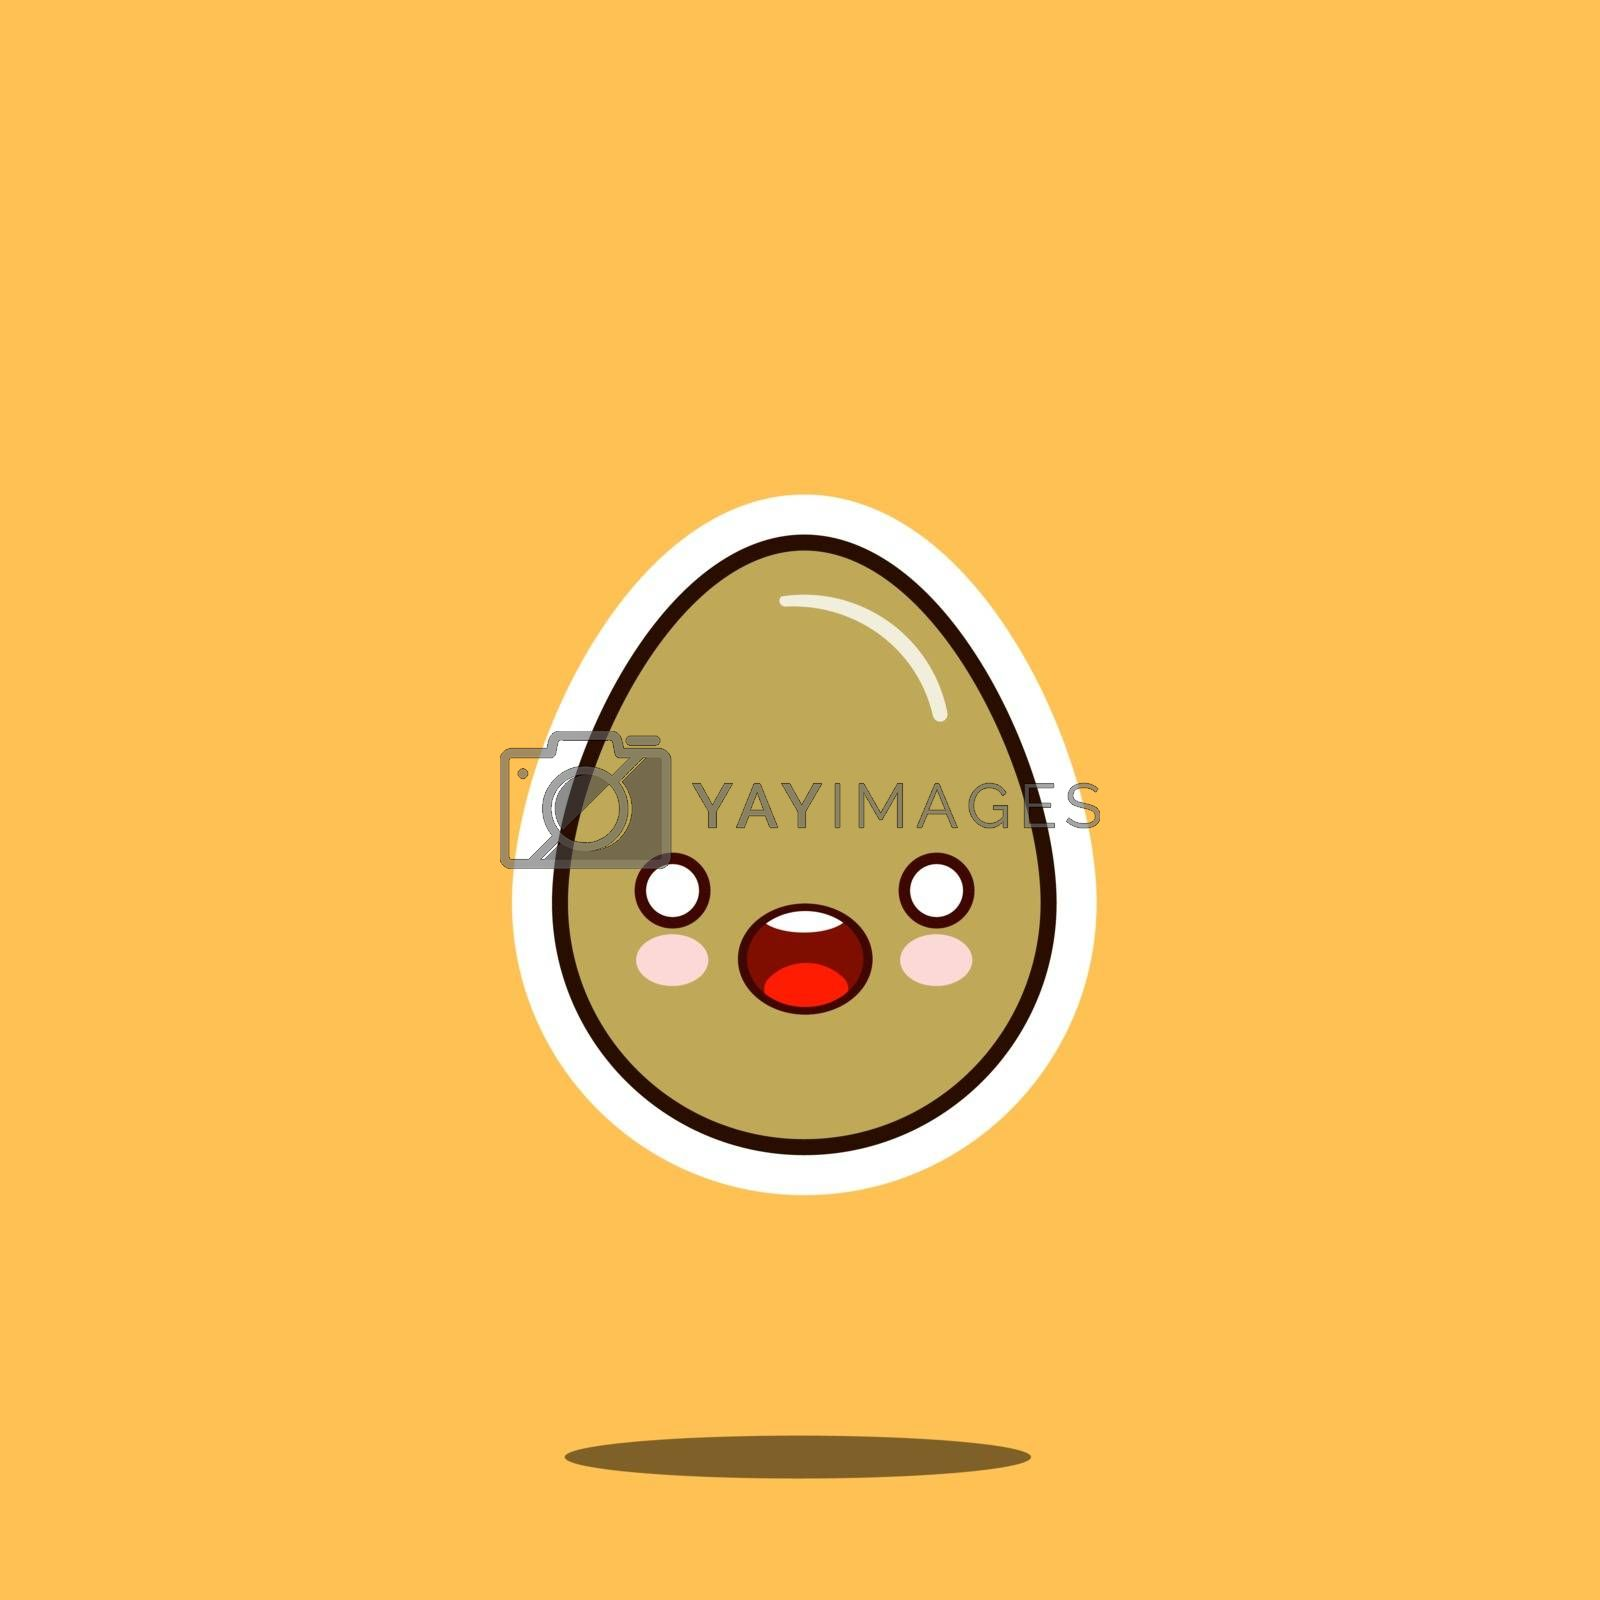 Royalty free image of Cute happy egg cartoon character isolated on white background vector illustration. Funny fast food menu emoticon face icon. Happy smile cartoon face food, comical chicken egg animated mascot symbol by Alxyzt